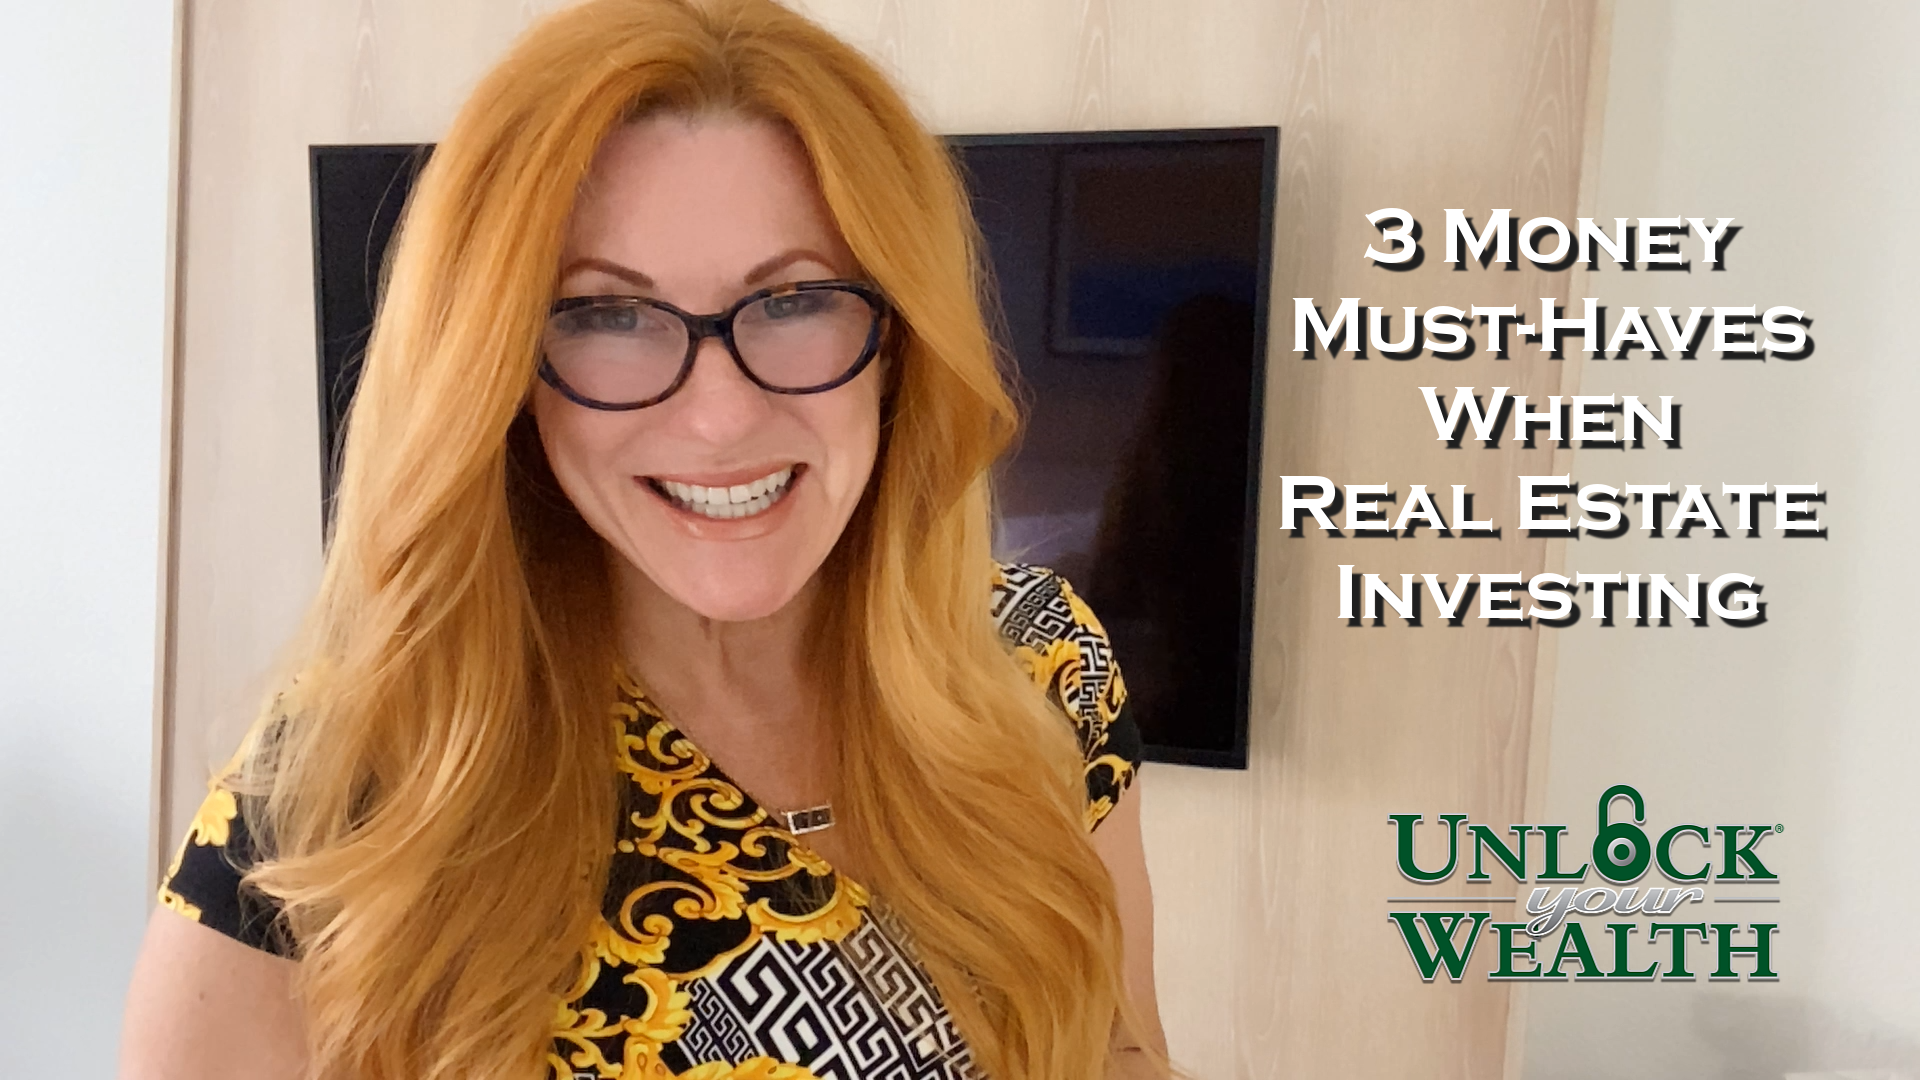 3 Money Money Must-Haves When Real Estate Investing  show art